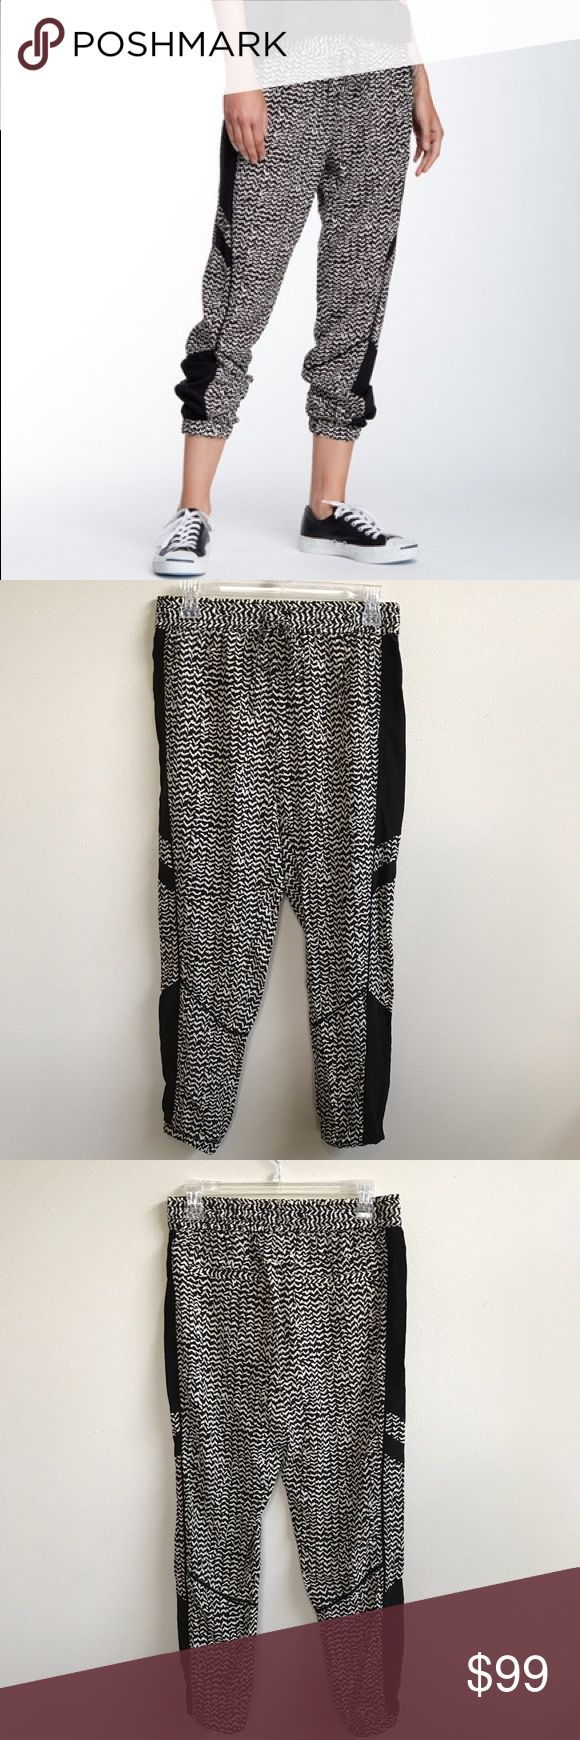 Pam & Gela : silk track pants New and never worn black and white 100% silk track pants / joggers. Size S / Petite. No PayPal, holds or trades. Bundle to save. 💸 Open to offers! Pam & Gela Pants Track Pants & Joggers